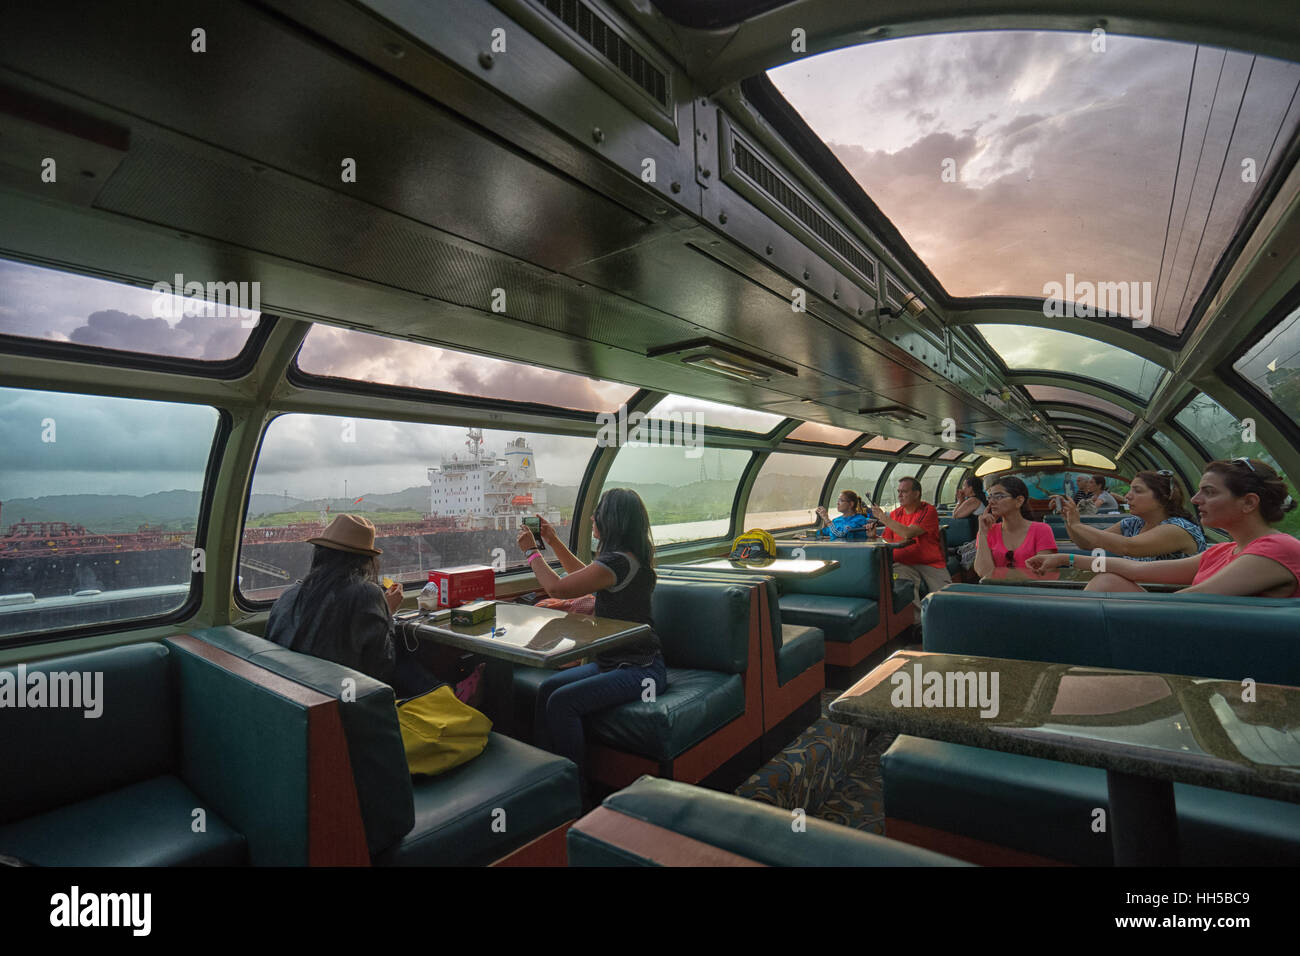 June 28, 2016 Colon, Panama: the interior of Panama Railway train commuting the capital city with Colon - Stock Image